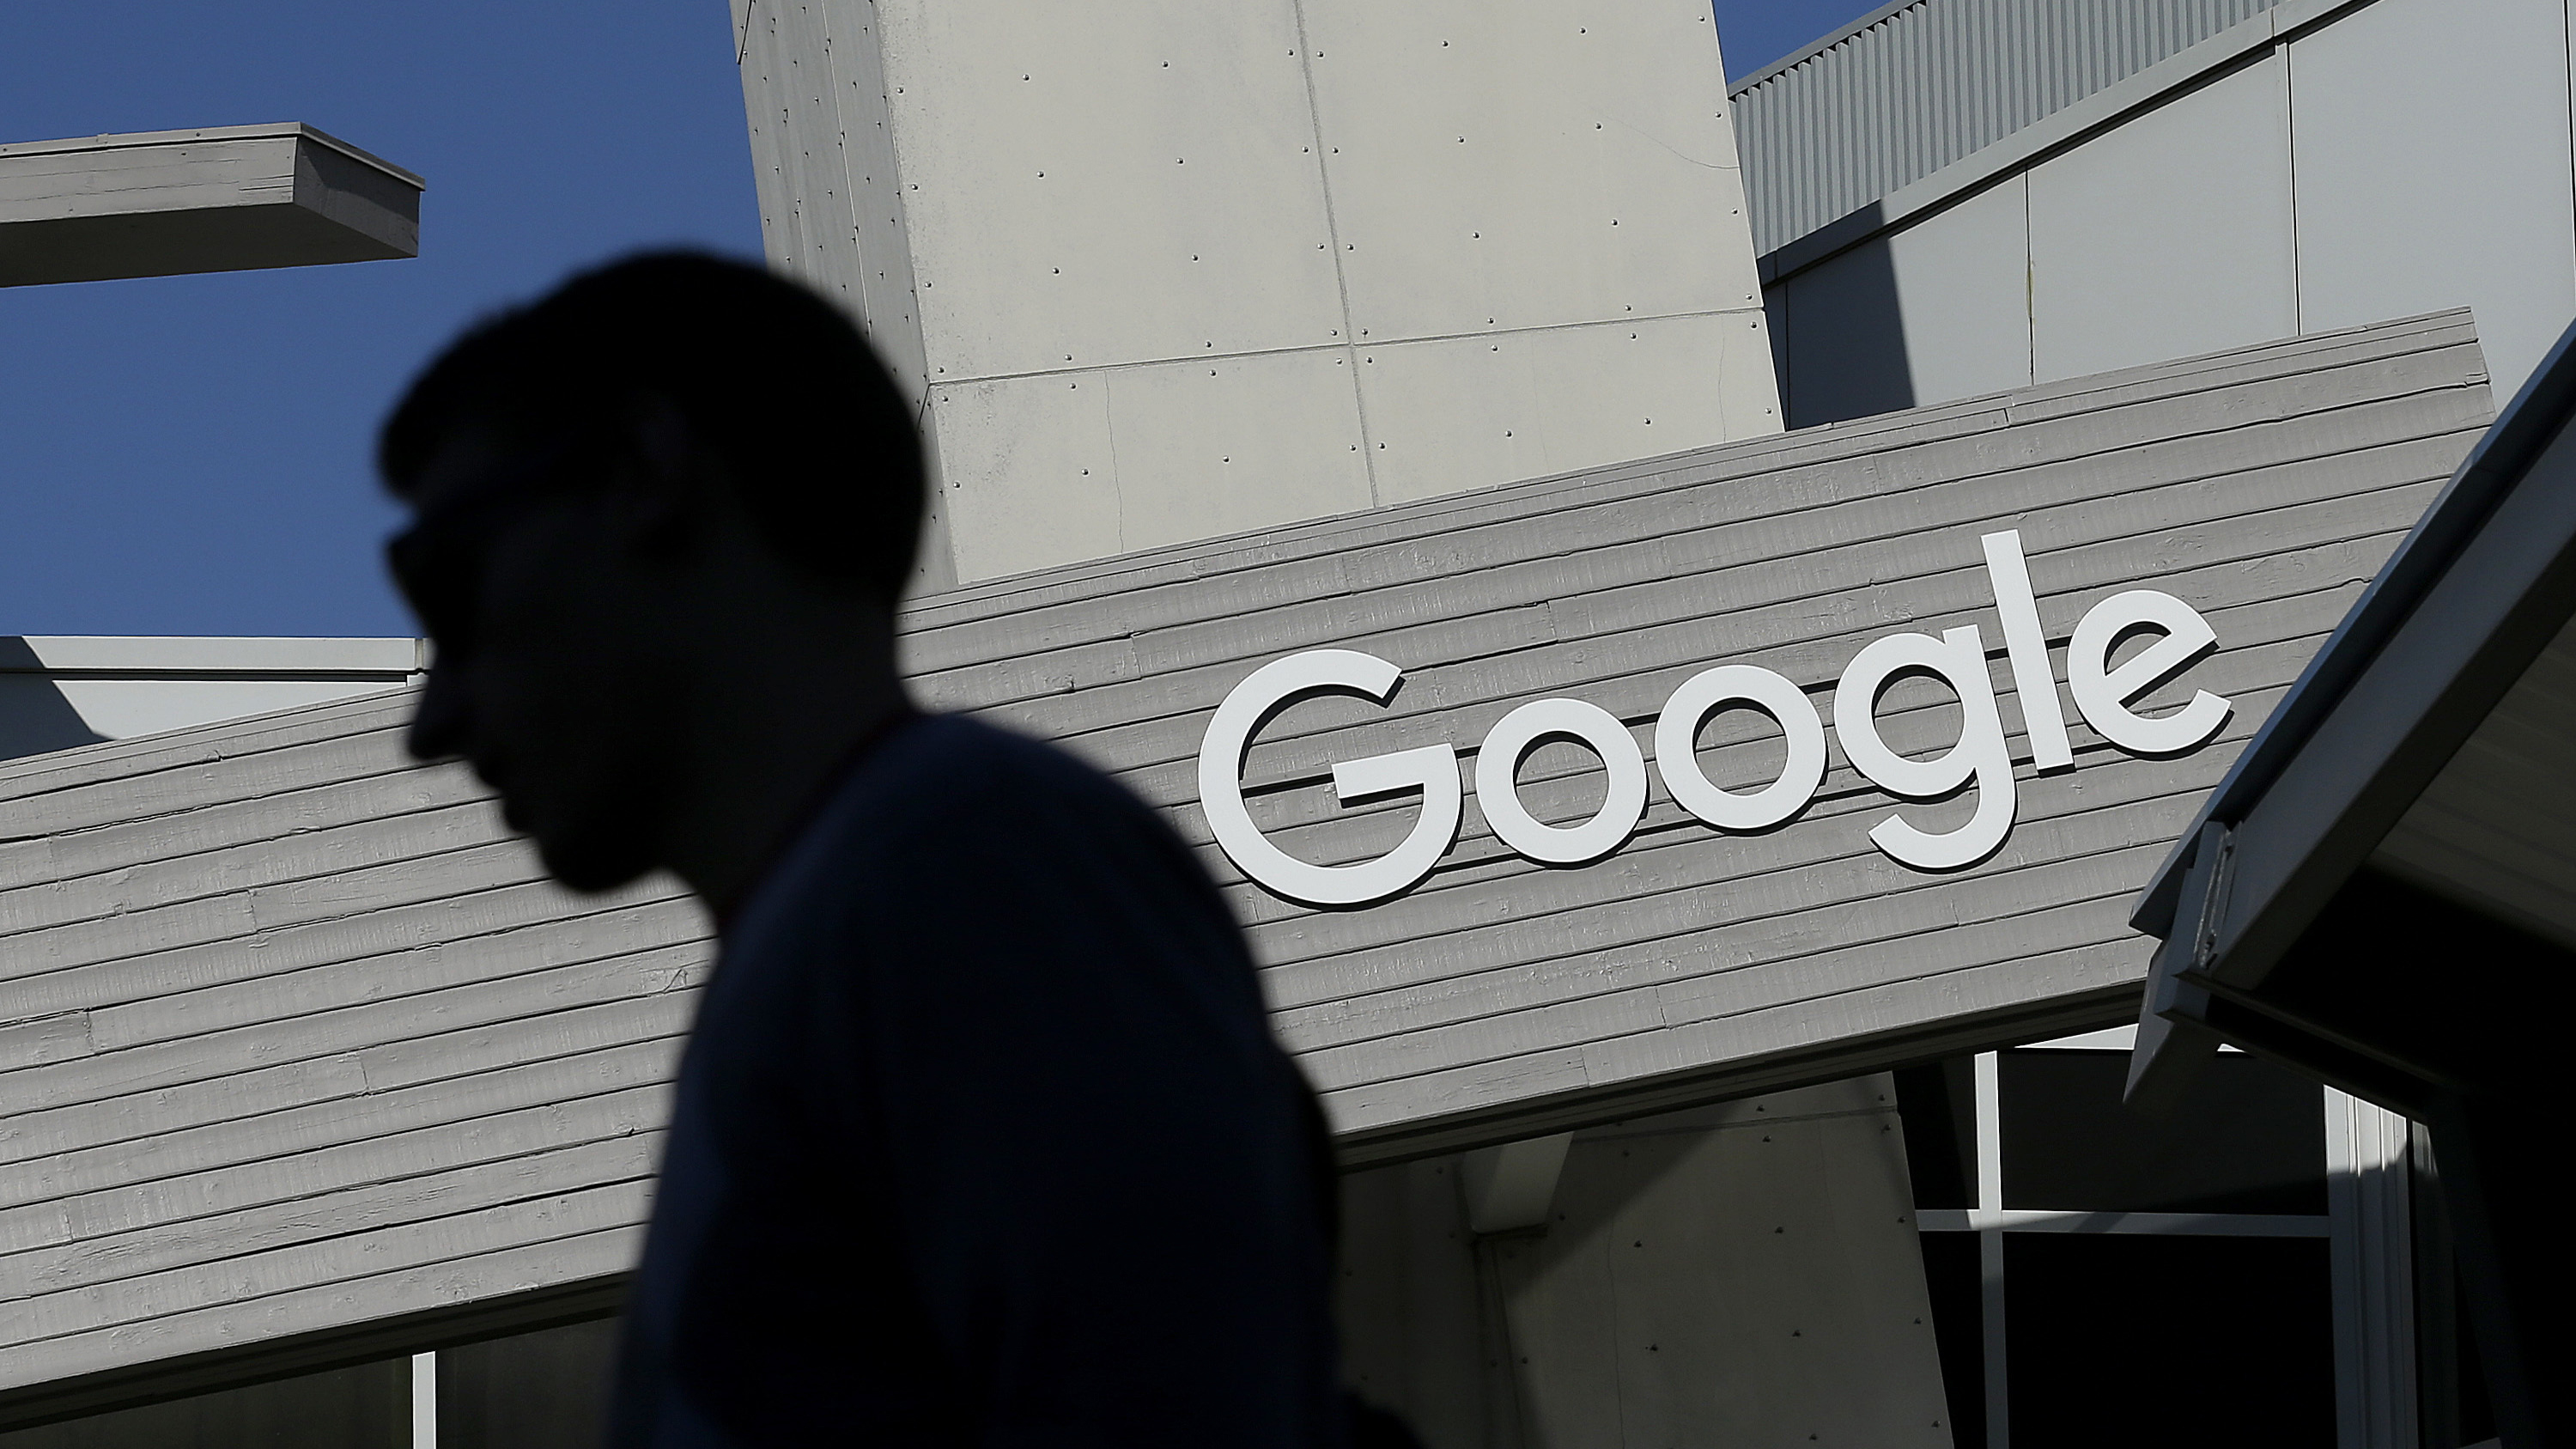 FILE - In this Nov. 12, 2015, file photo, a man walks past a building on the Google campus in Mountain View, Calif. Google and LinkedIn said July 13, 2016, that they have completed a massive land swap involving several Silicon Valley properties. (AP Photo/Jeff Chiu, File)